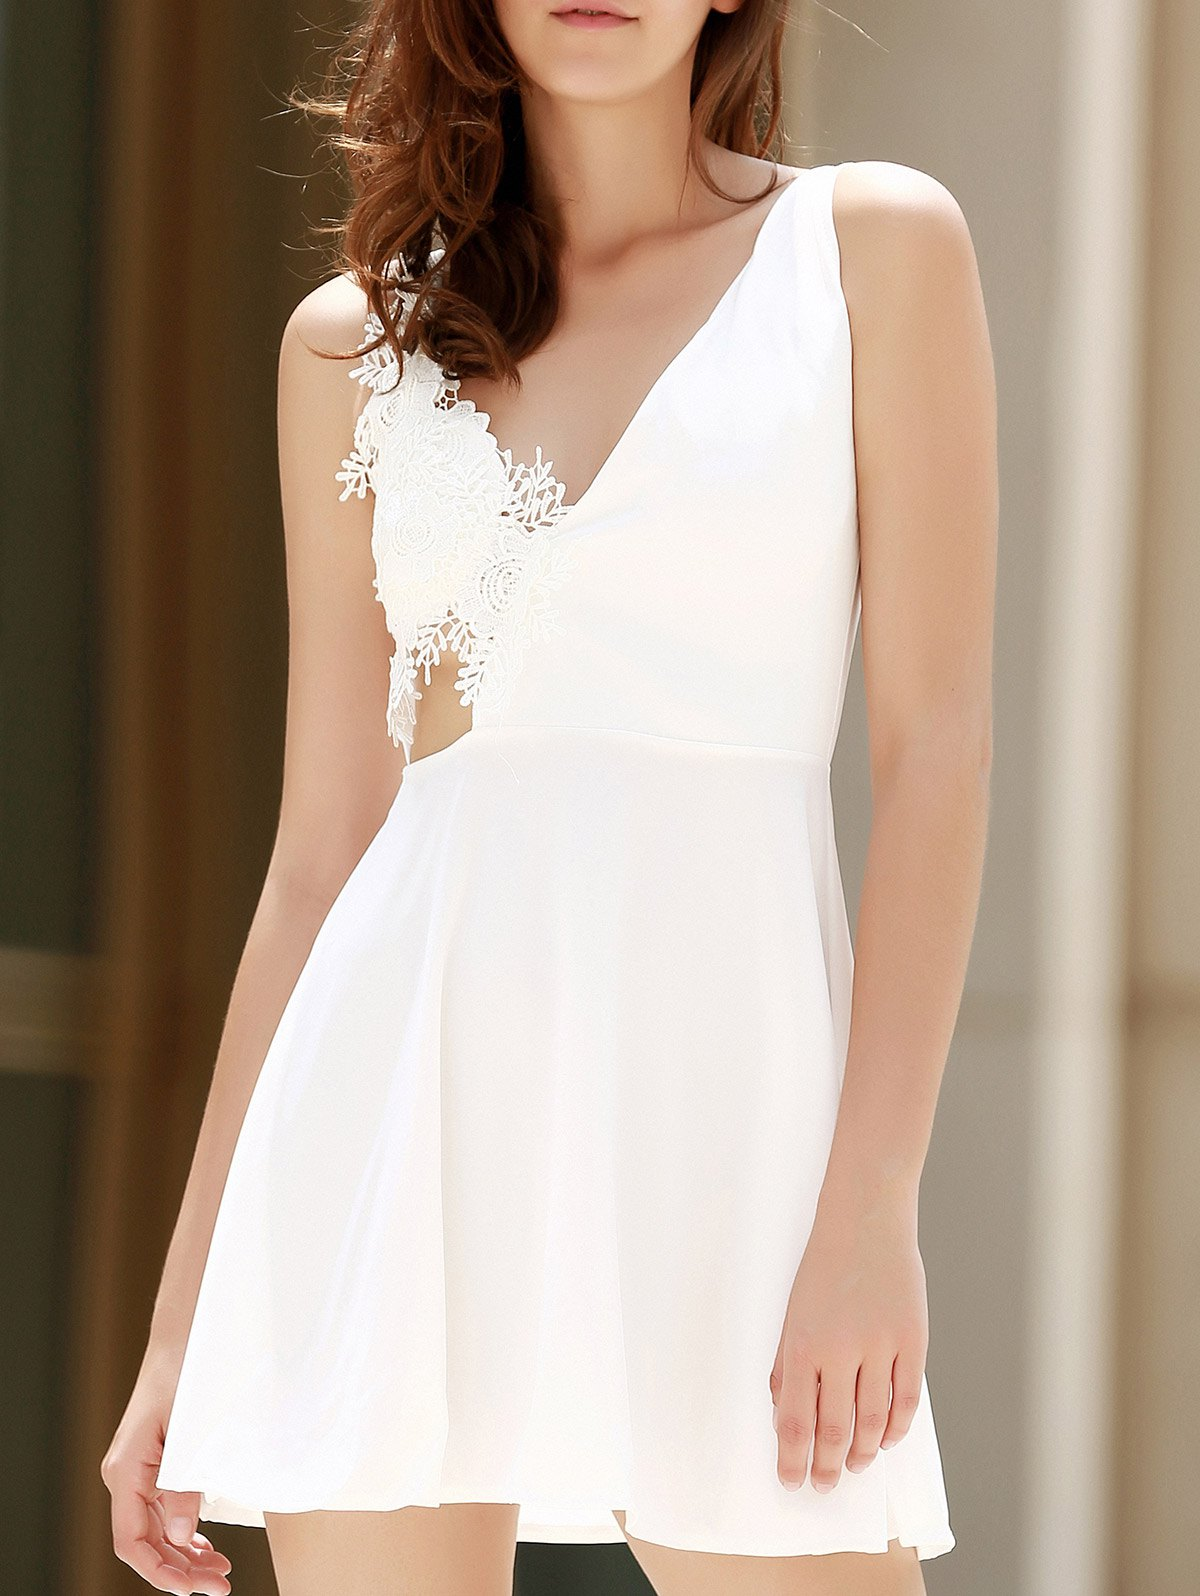 Chic Alluring Sleeveless Plunging Neck Backless Solid Color Women's Dress